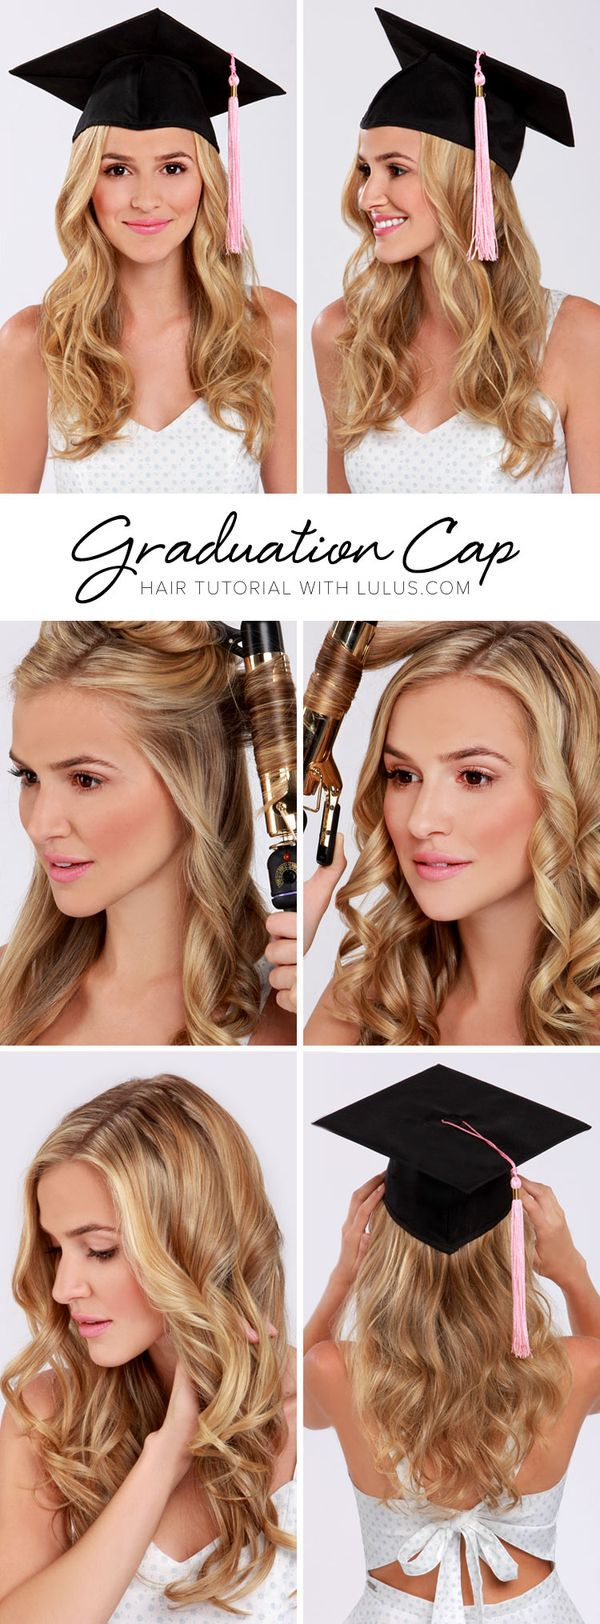 best 25+ hairstyles for graduation ideas on pinterest | curly prom